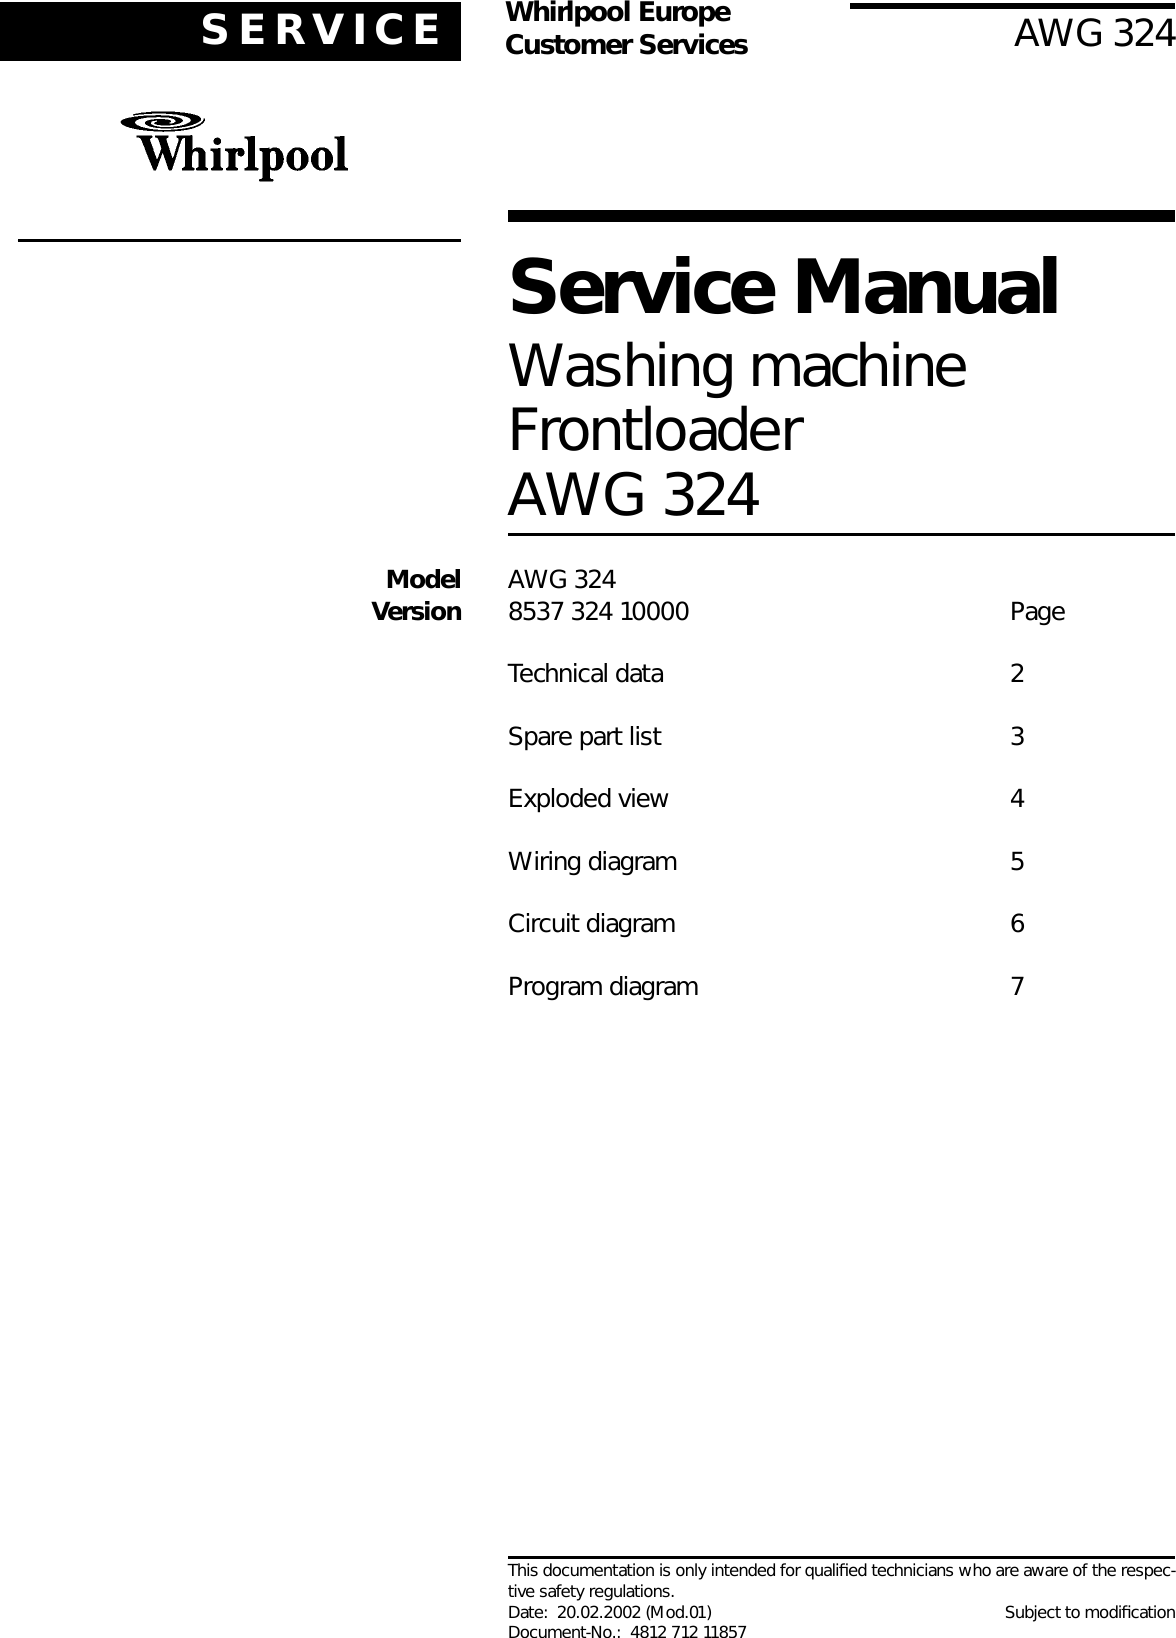 Whirlpool Washer 324 Users Manual Front Loader Washing Machine Wiring Diagram